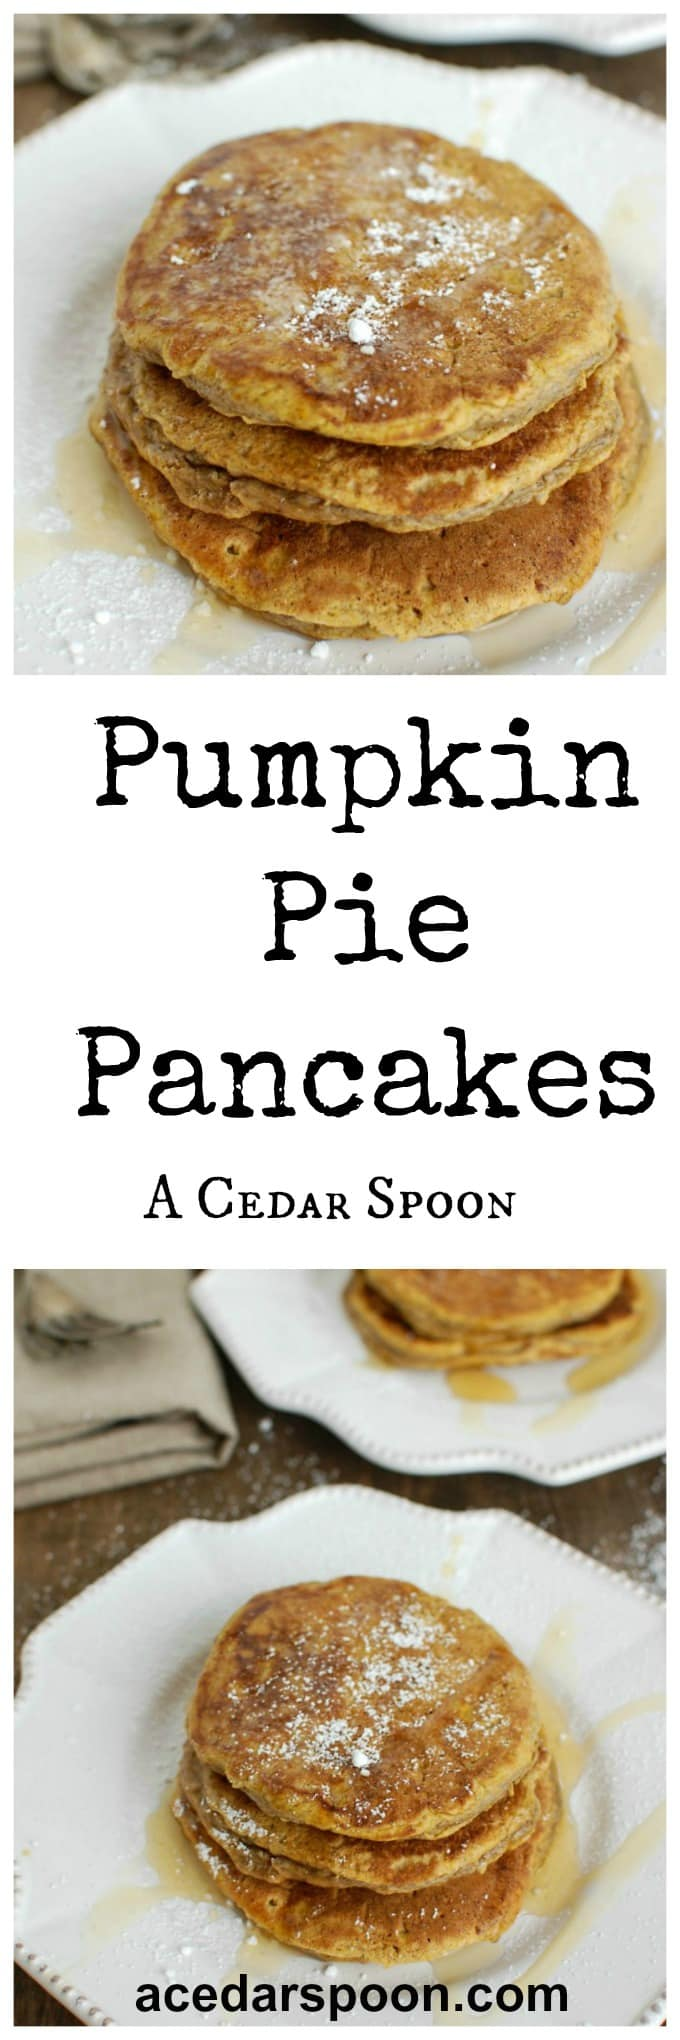 Pumpkin Pie Pancakes - A Cedar Spoon